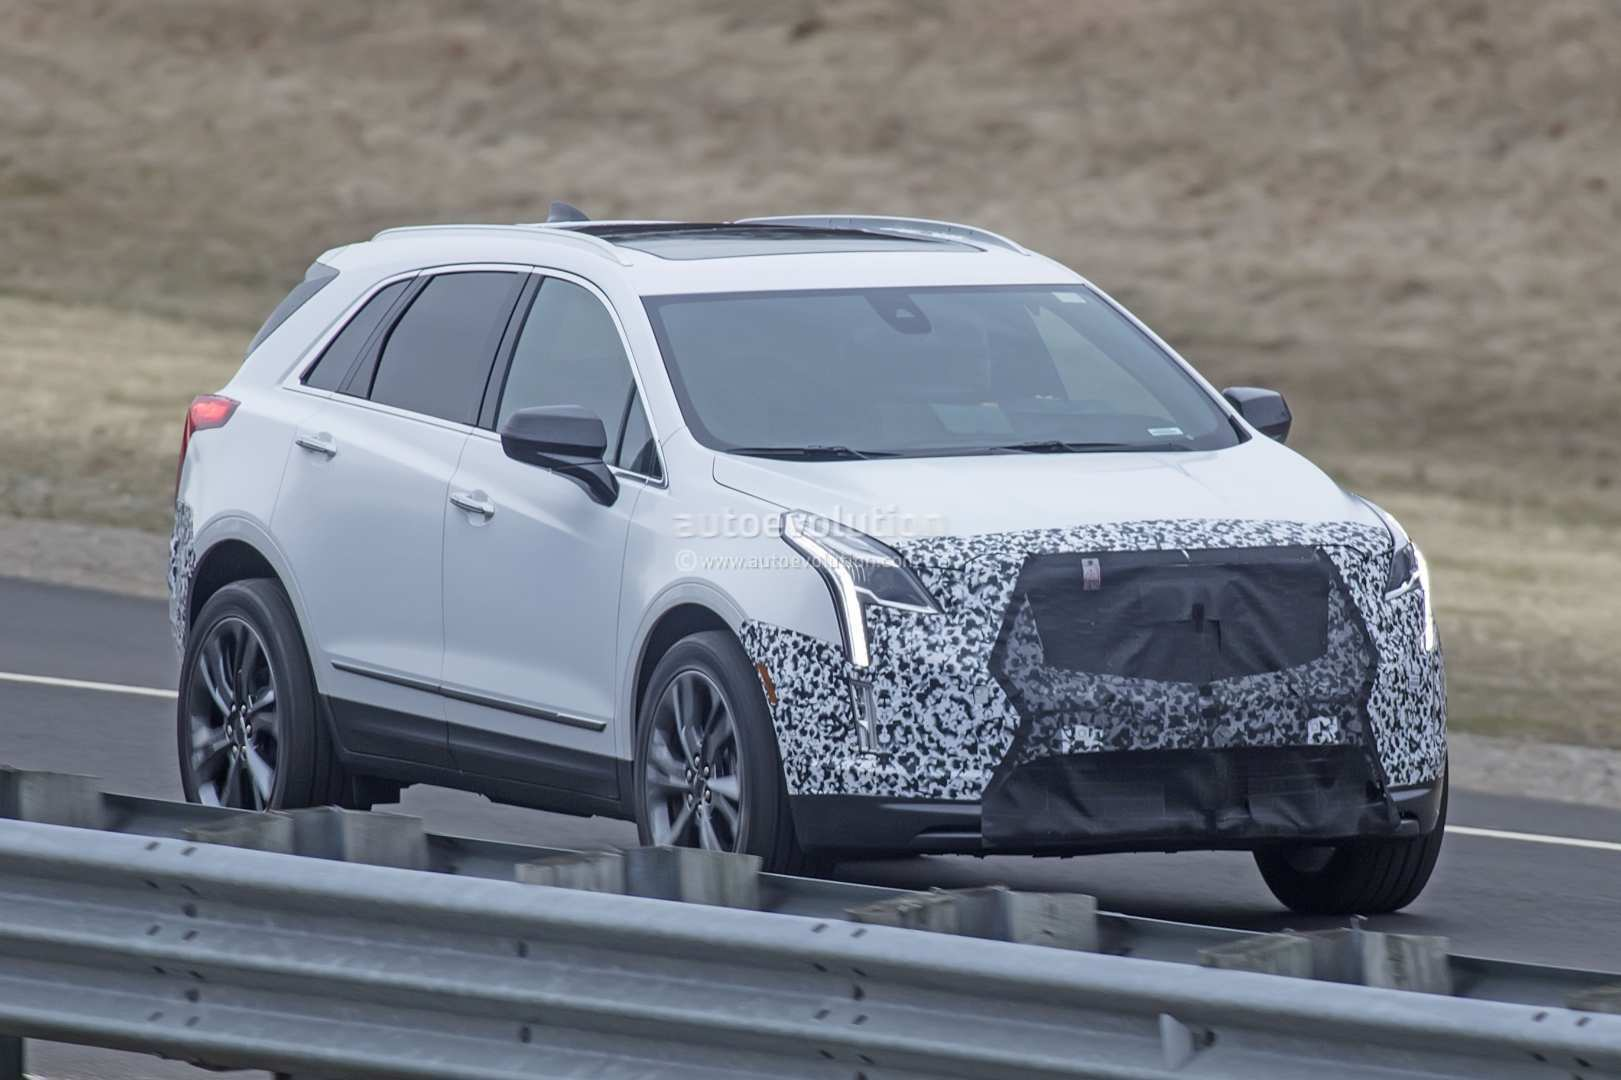 42 New When Will The 2020 Cadillac Xt5 Be Available New Review